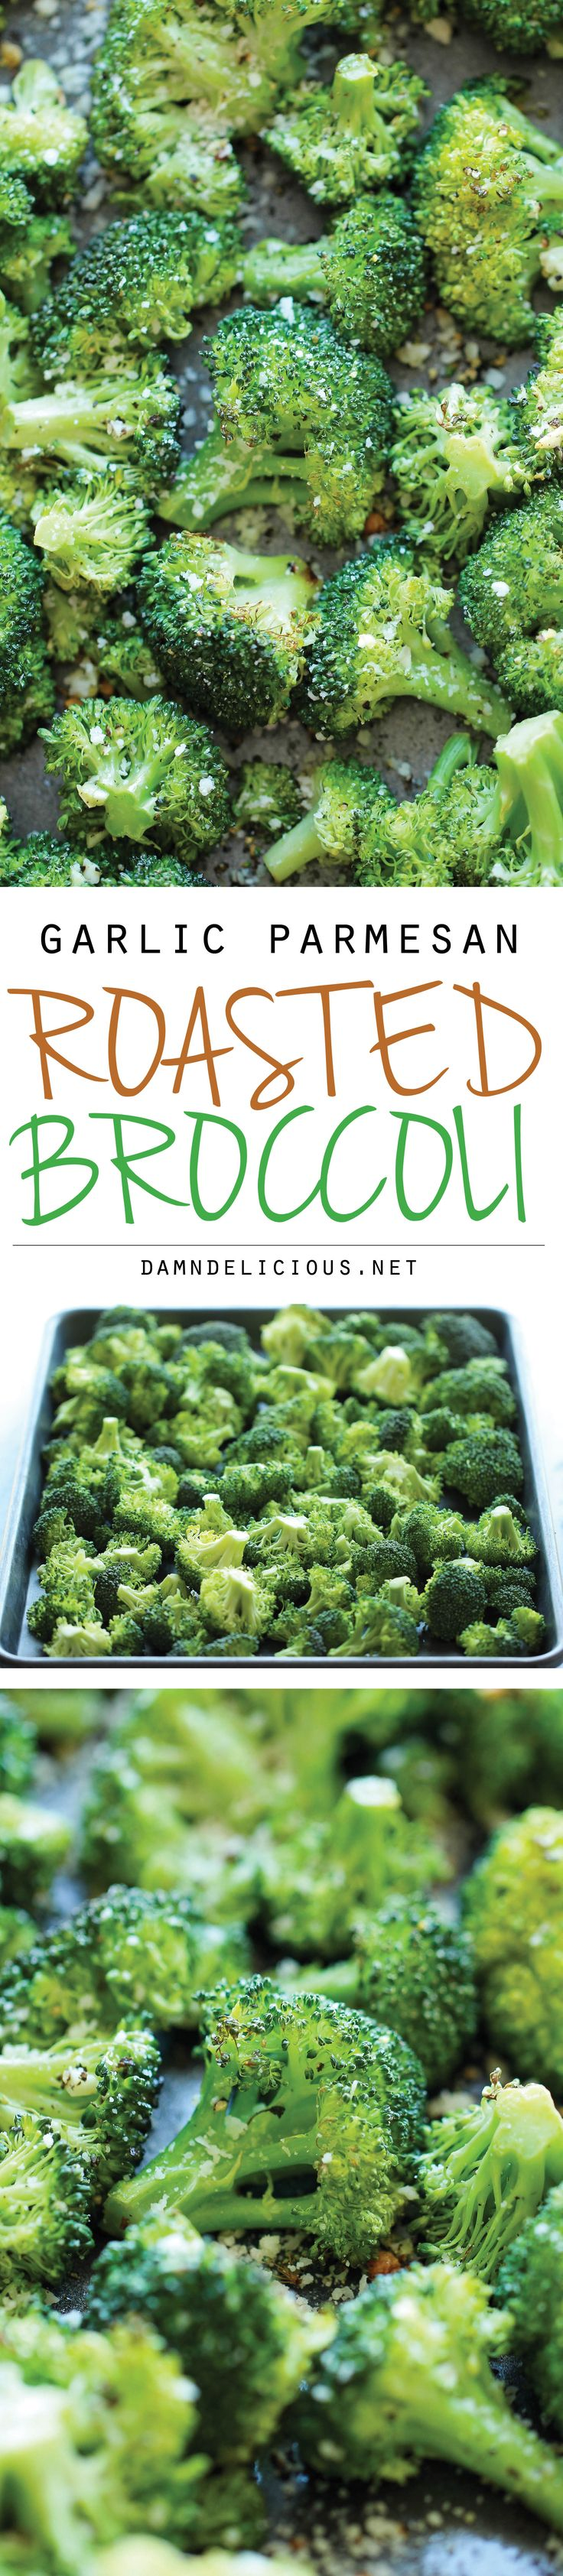 For my hubby...Garlic Parmesan Roasted Broccoli - This comes together so quickly with just 5 min prep. Plus, it's the perfect and easiest side dish to any meal!